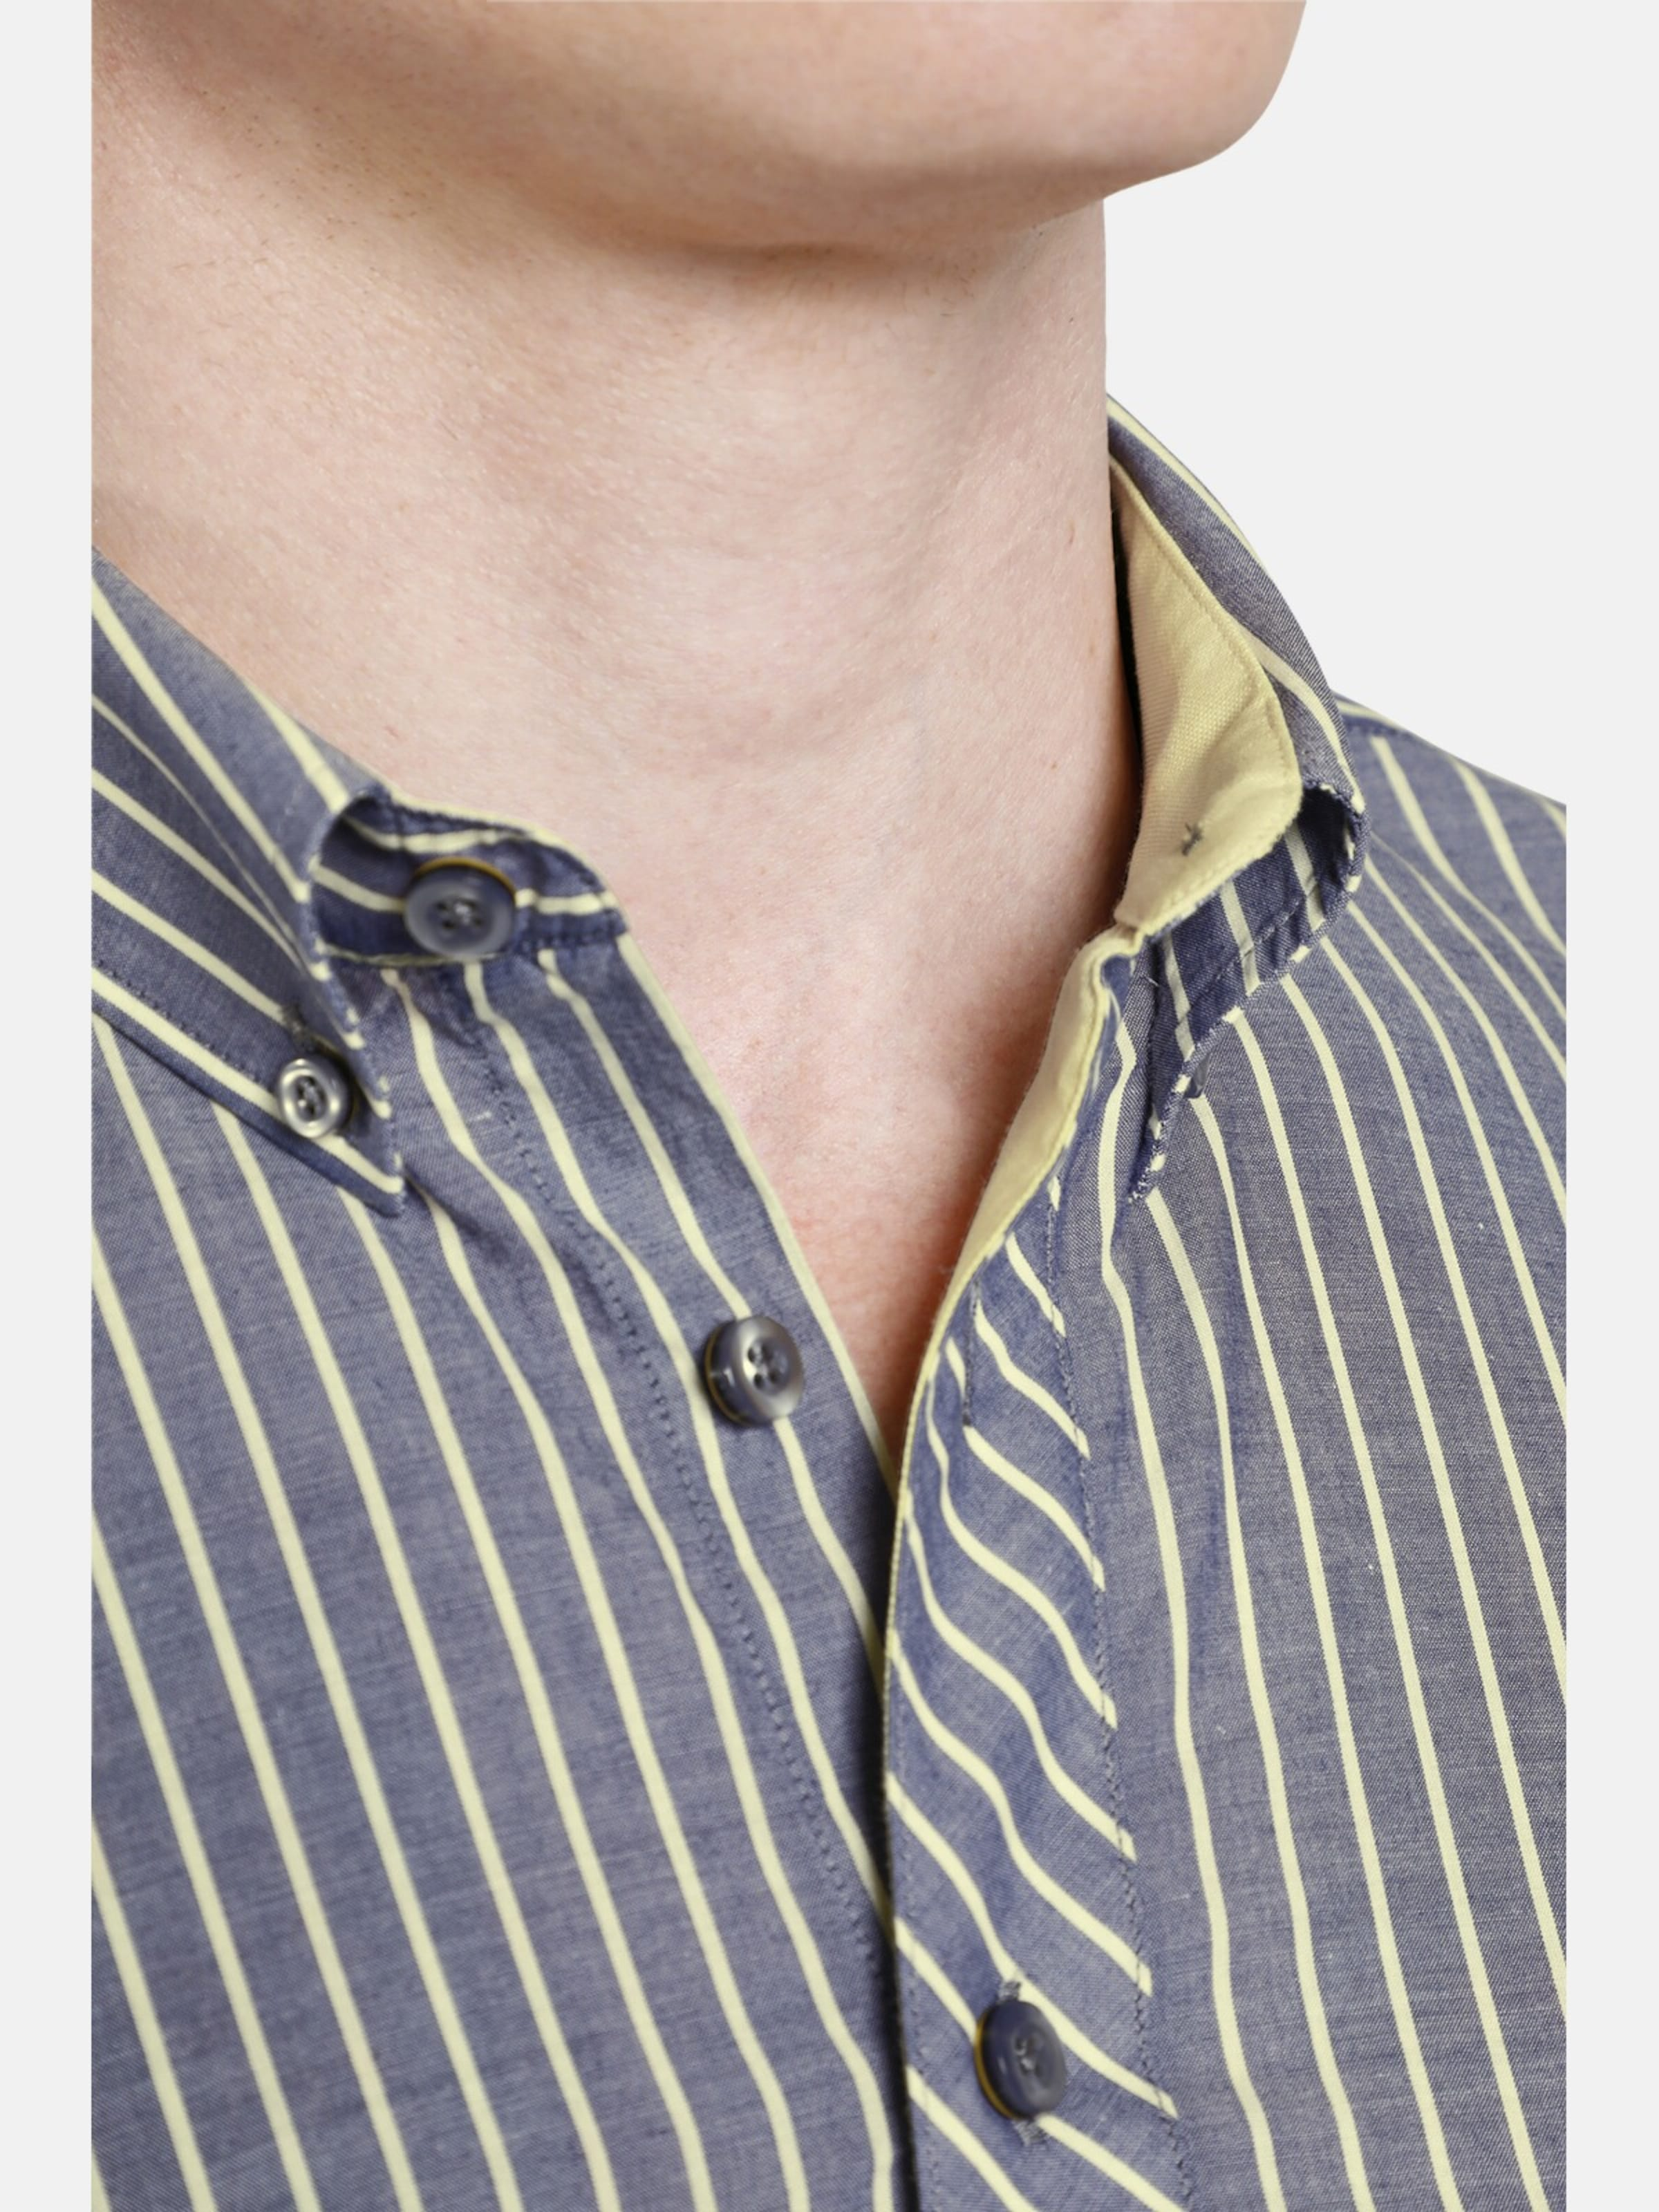 Shirtmaster Hemd Shirtmaster In 'yellowchic' 'yellowchic' Hemd GelbGrau wXPN8n0Ok